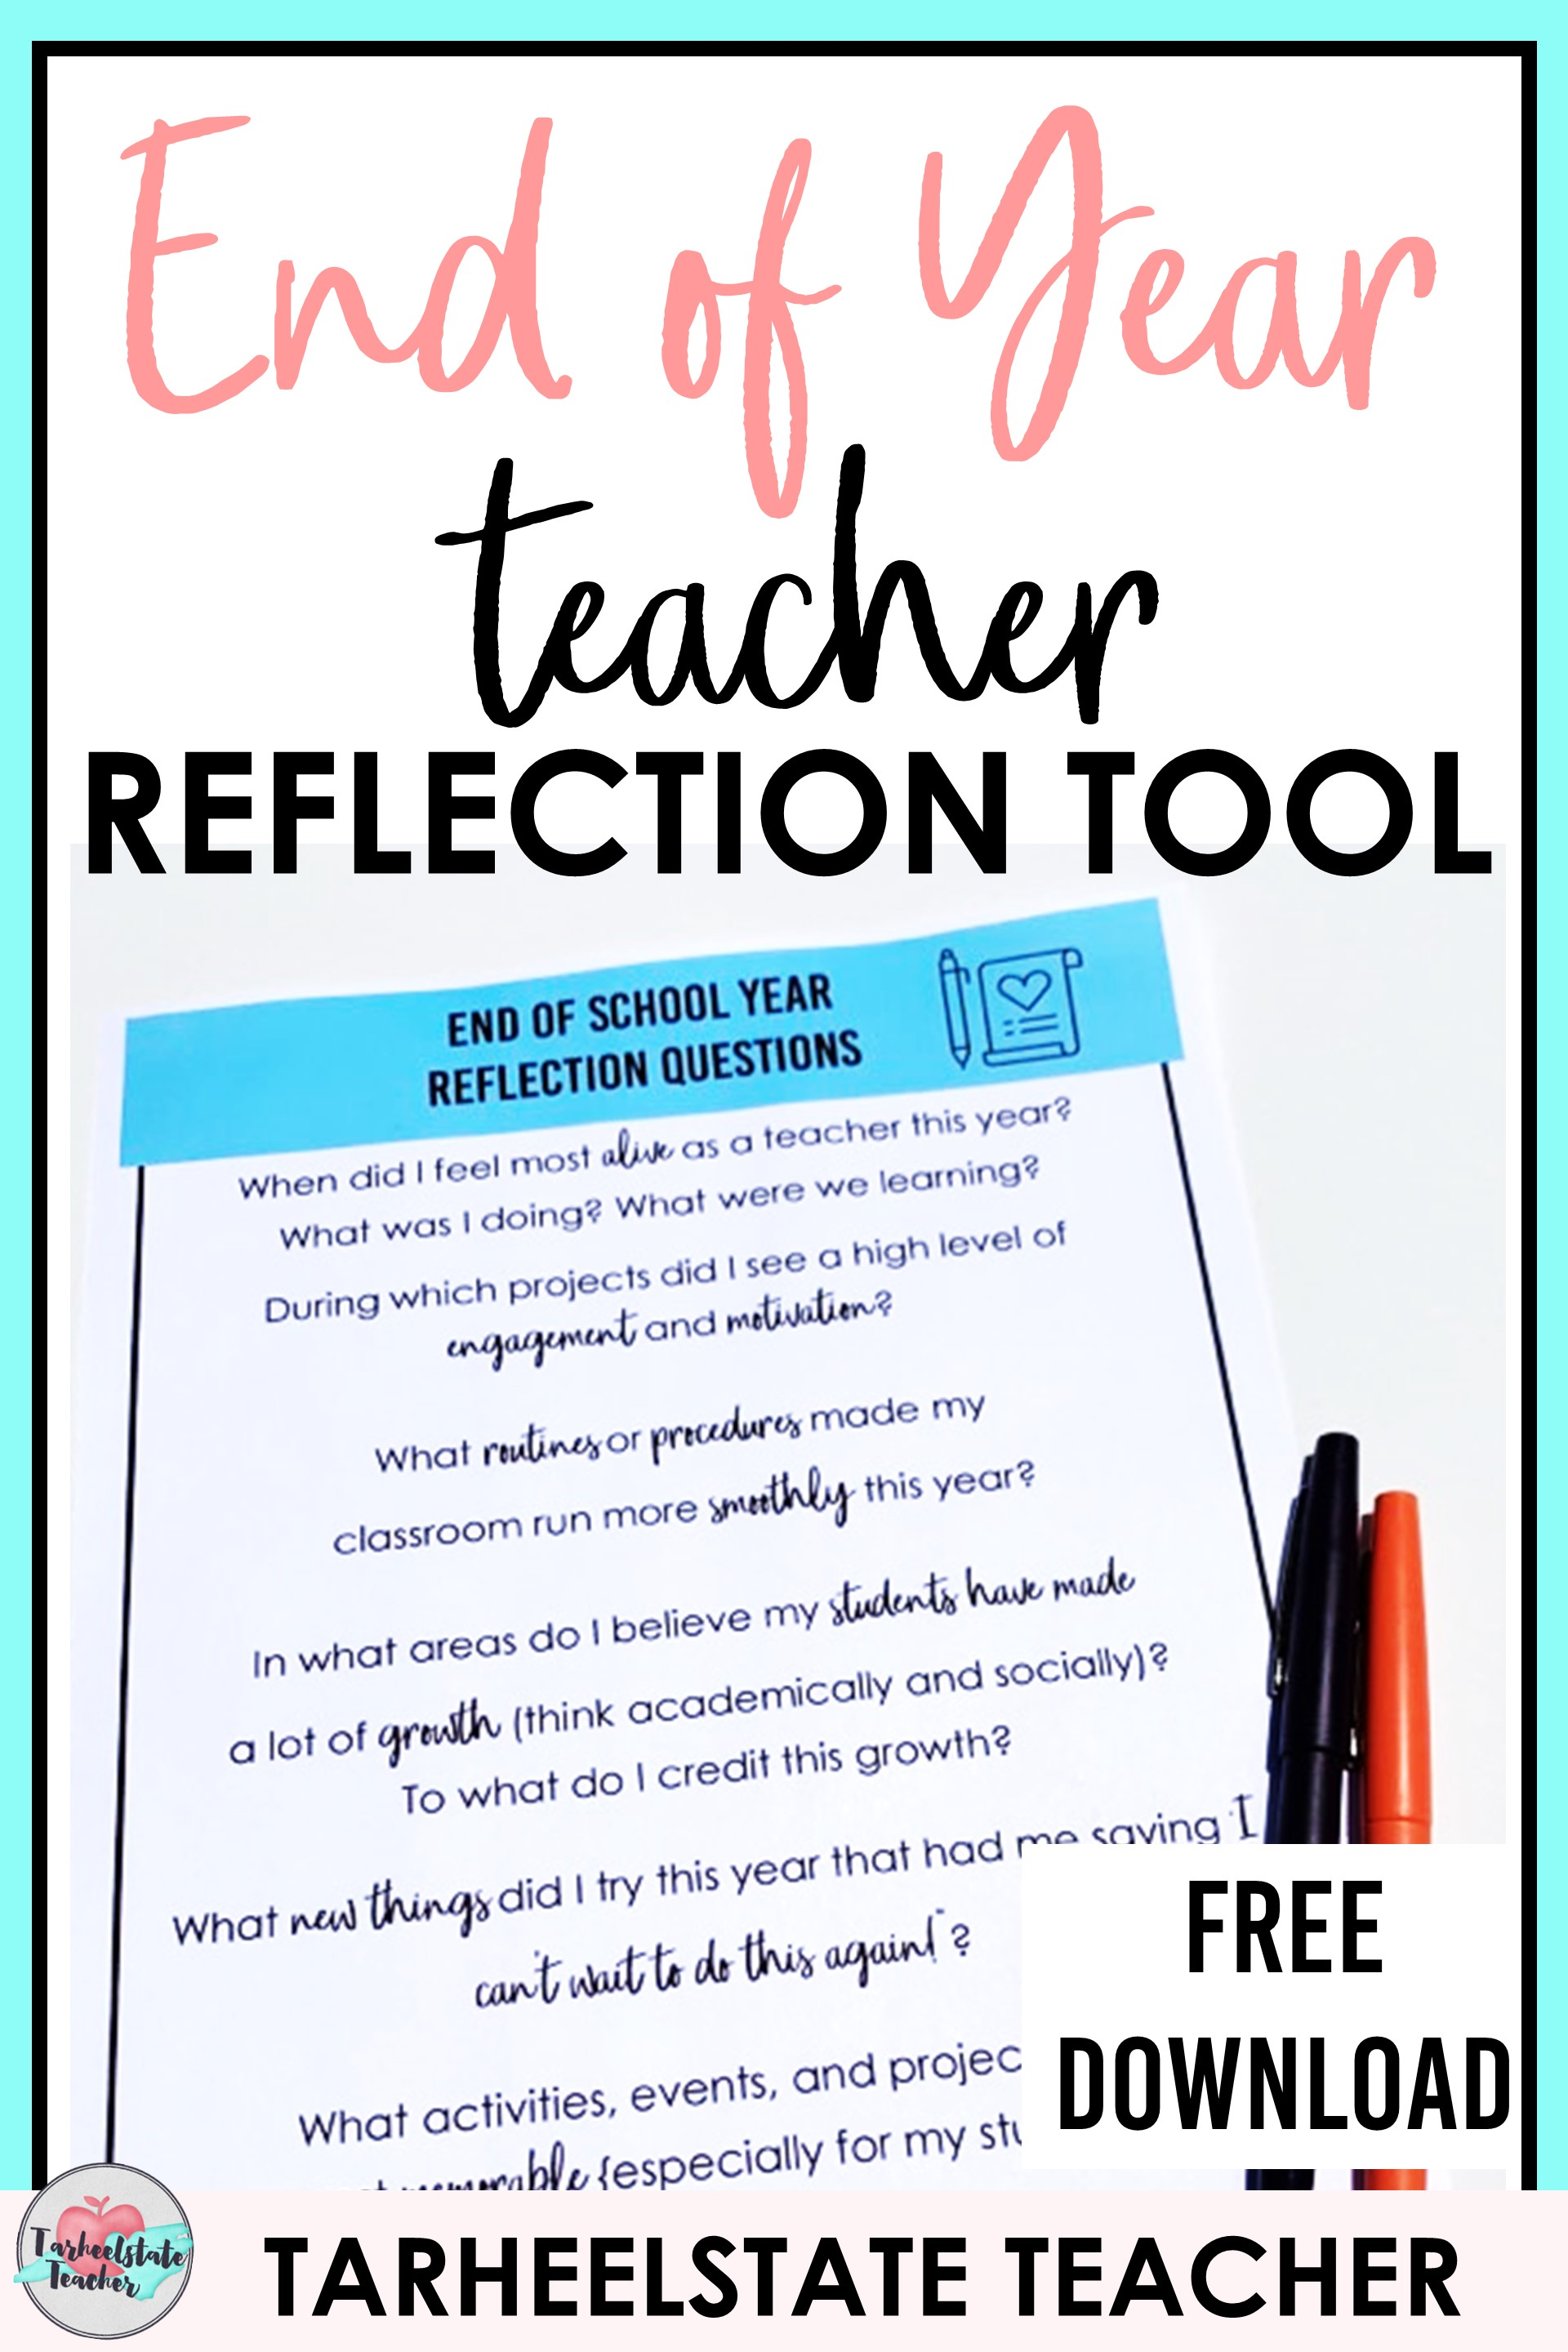 questions for end of year teacher reflection pin.jpg